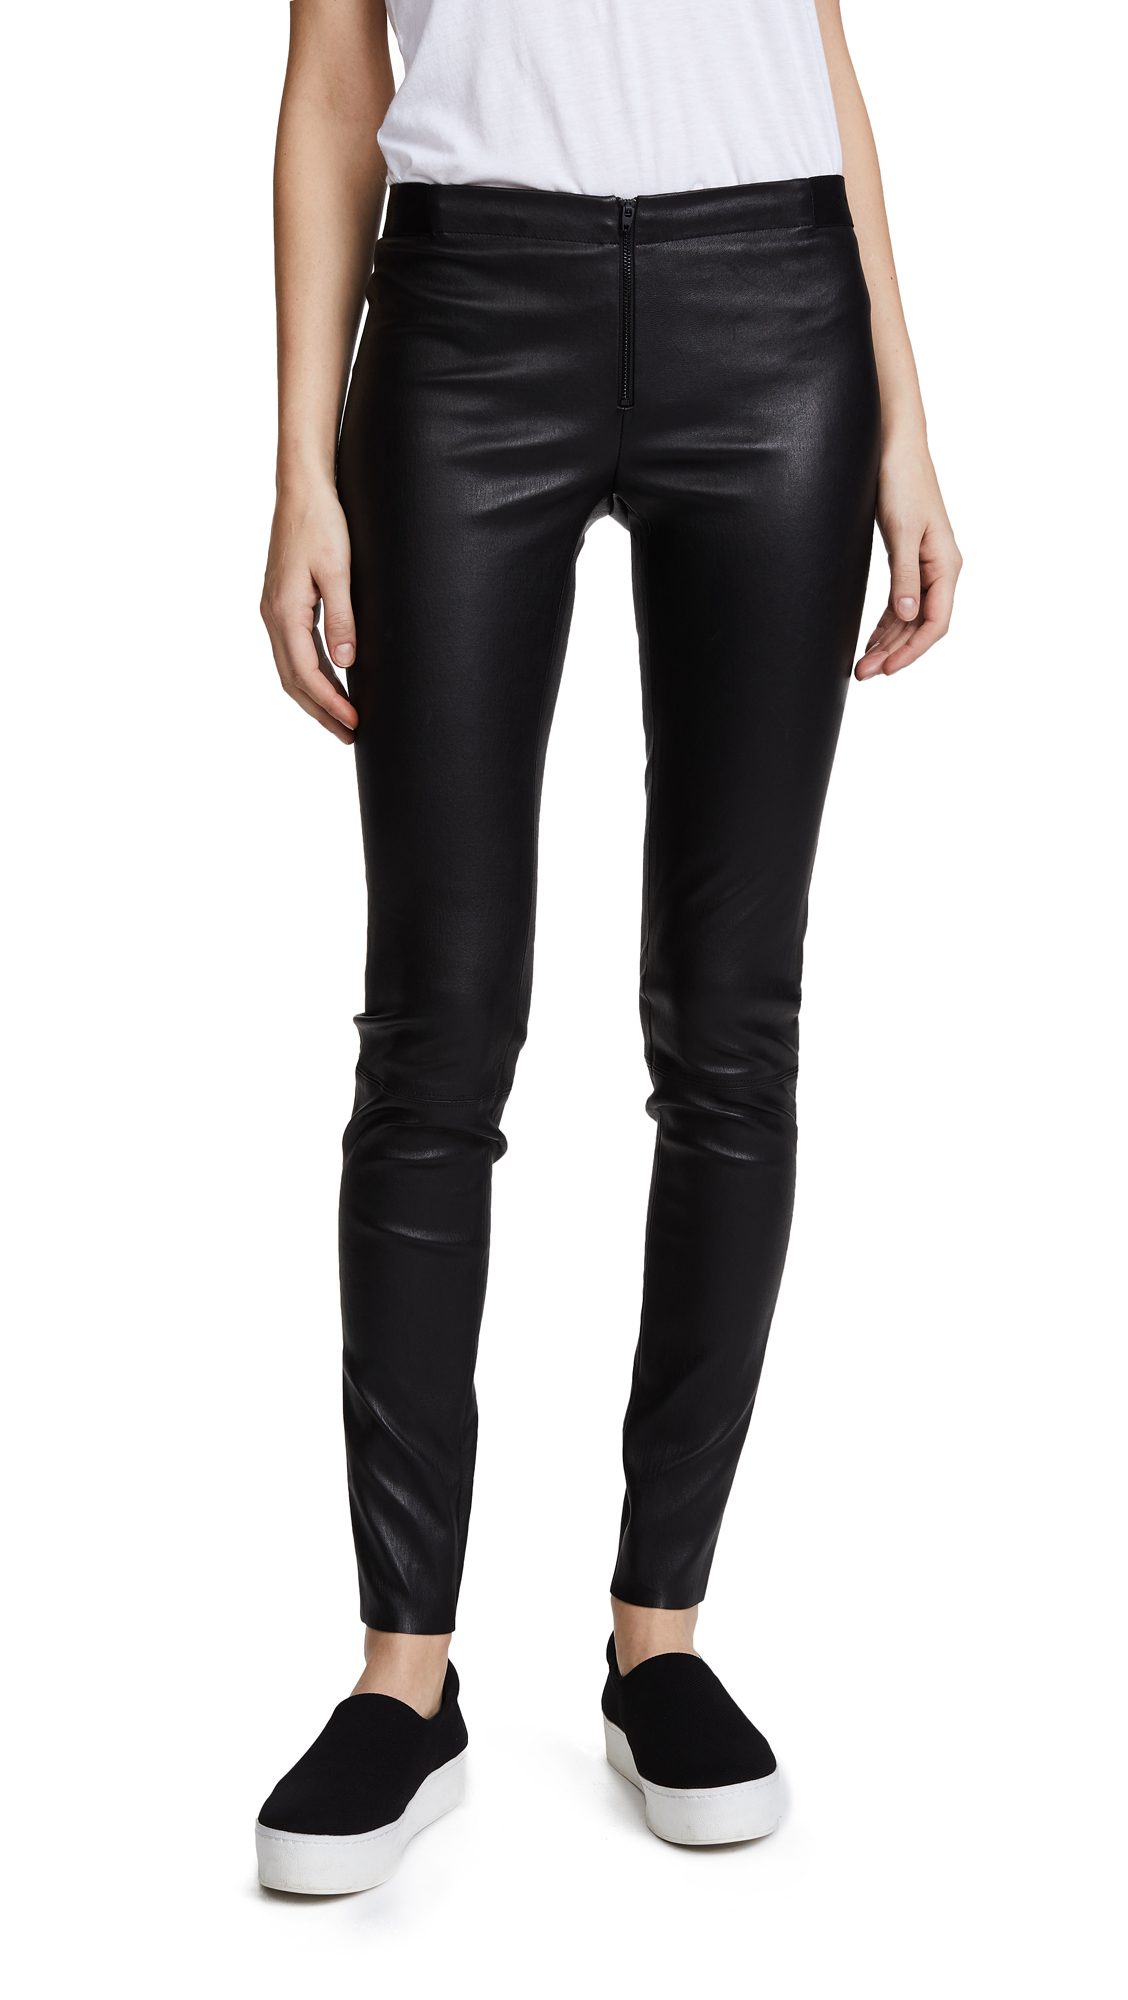 alice + olivia Zip Front Leather Leggings - Black